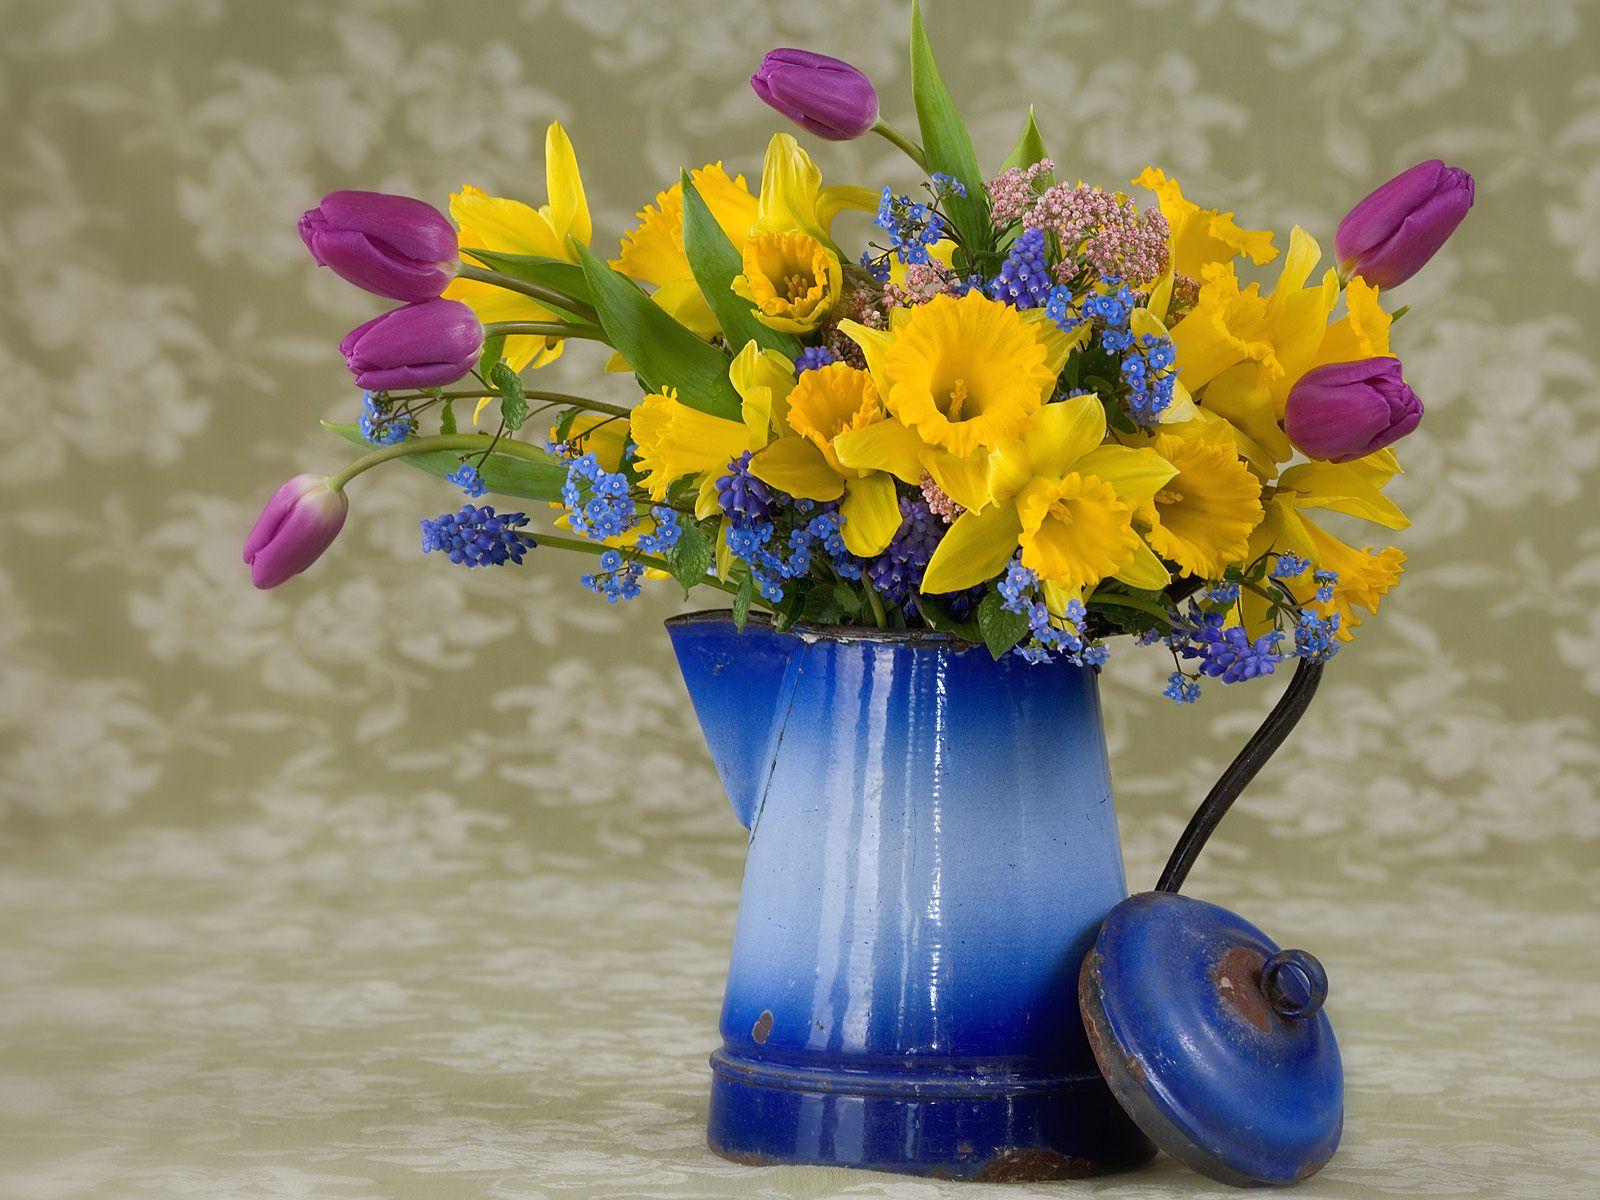 Spring Flower Arrangement Wallpapers Photos Pictures and Backgrounds 1600x1200